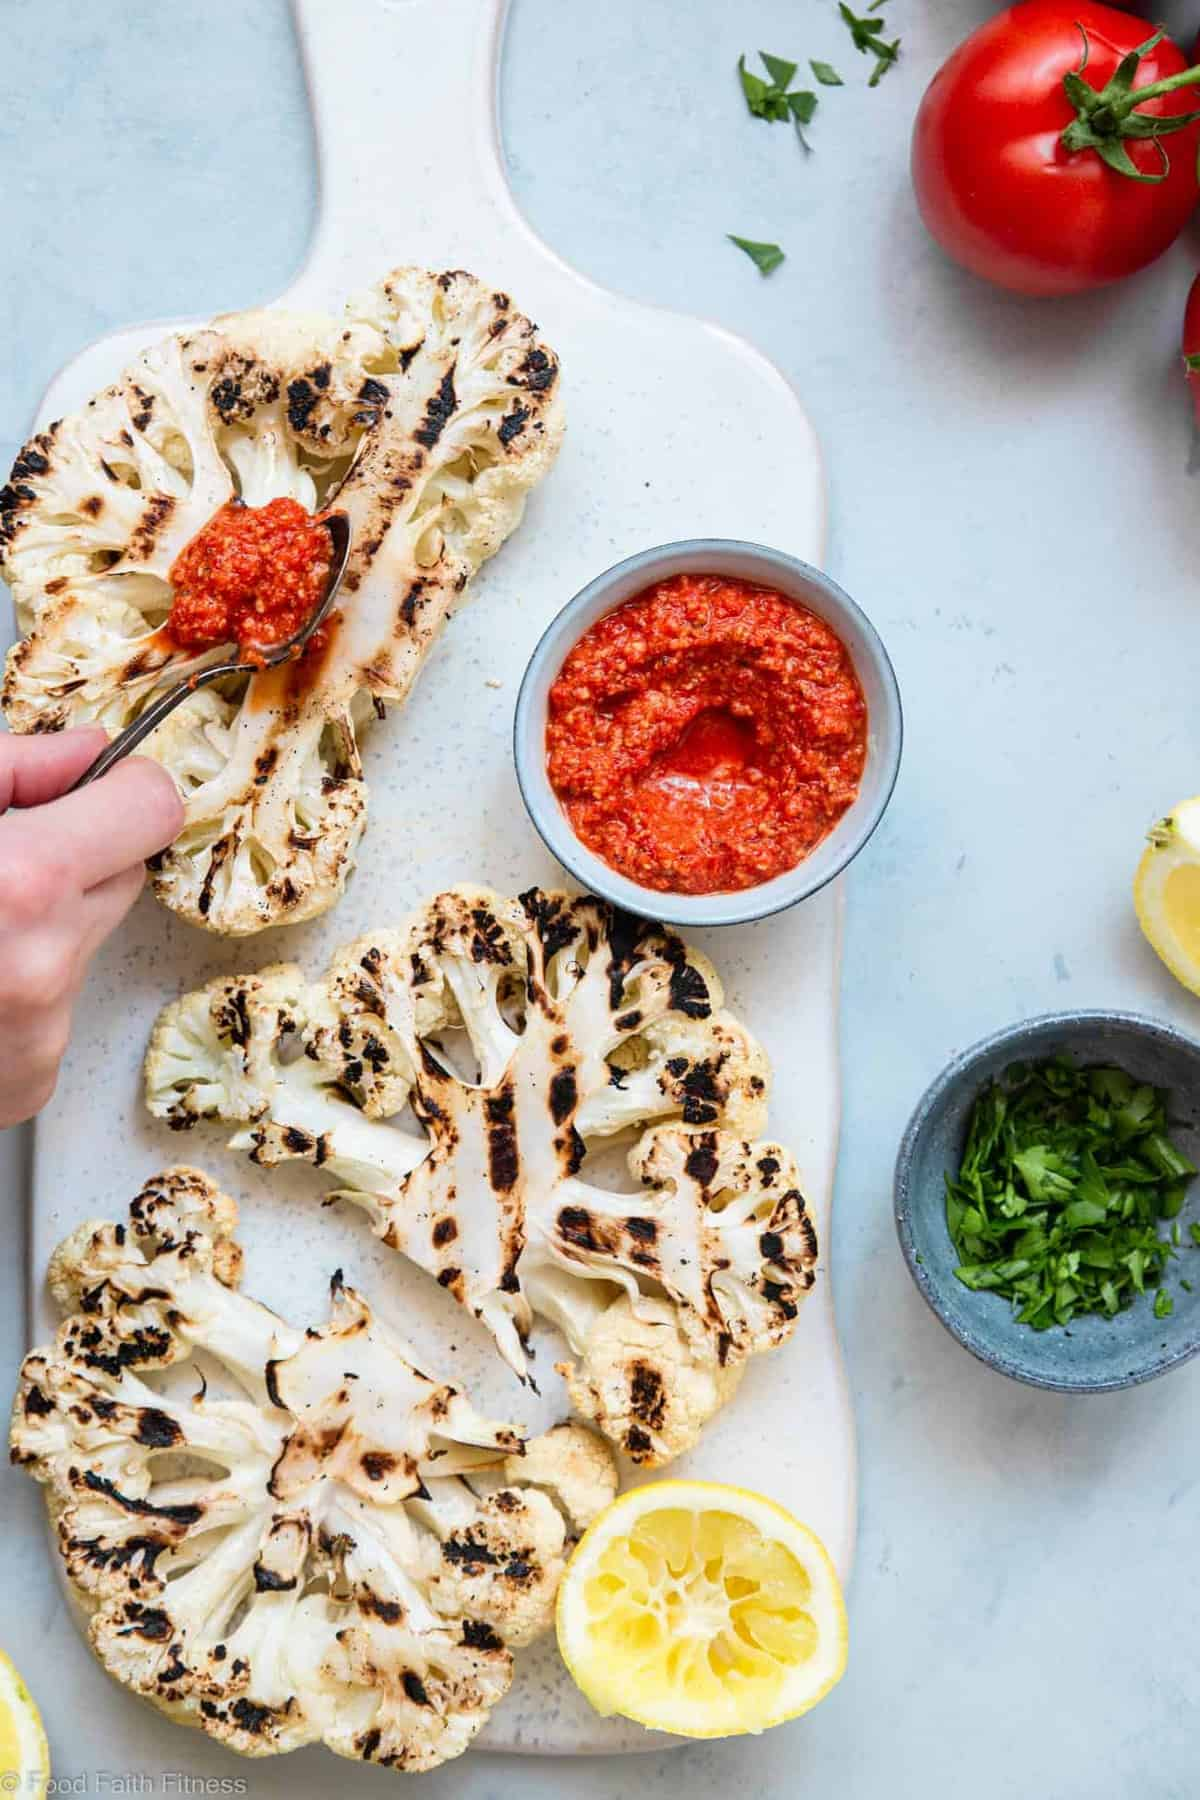 A hand spreading sauce on cauliflower steak on the grill